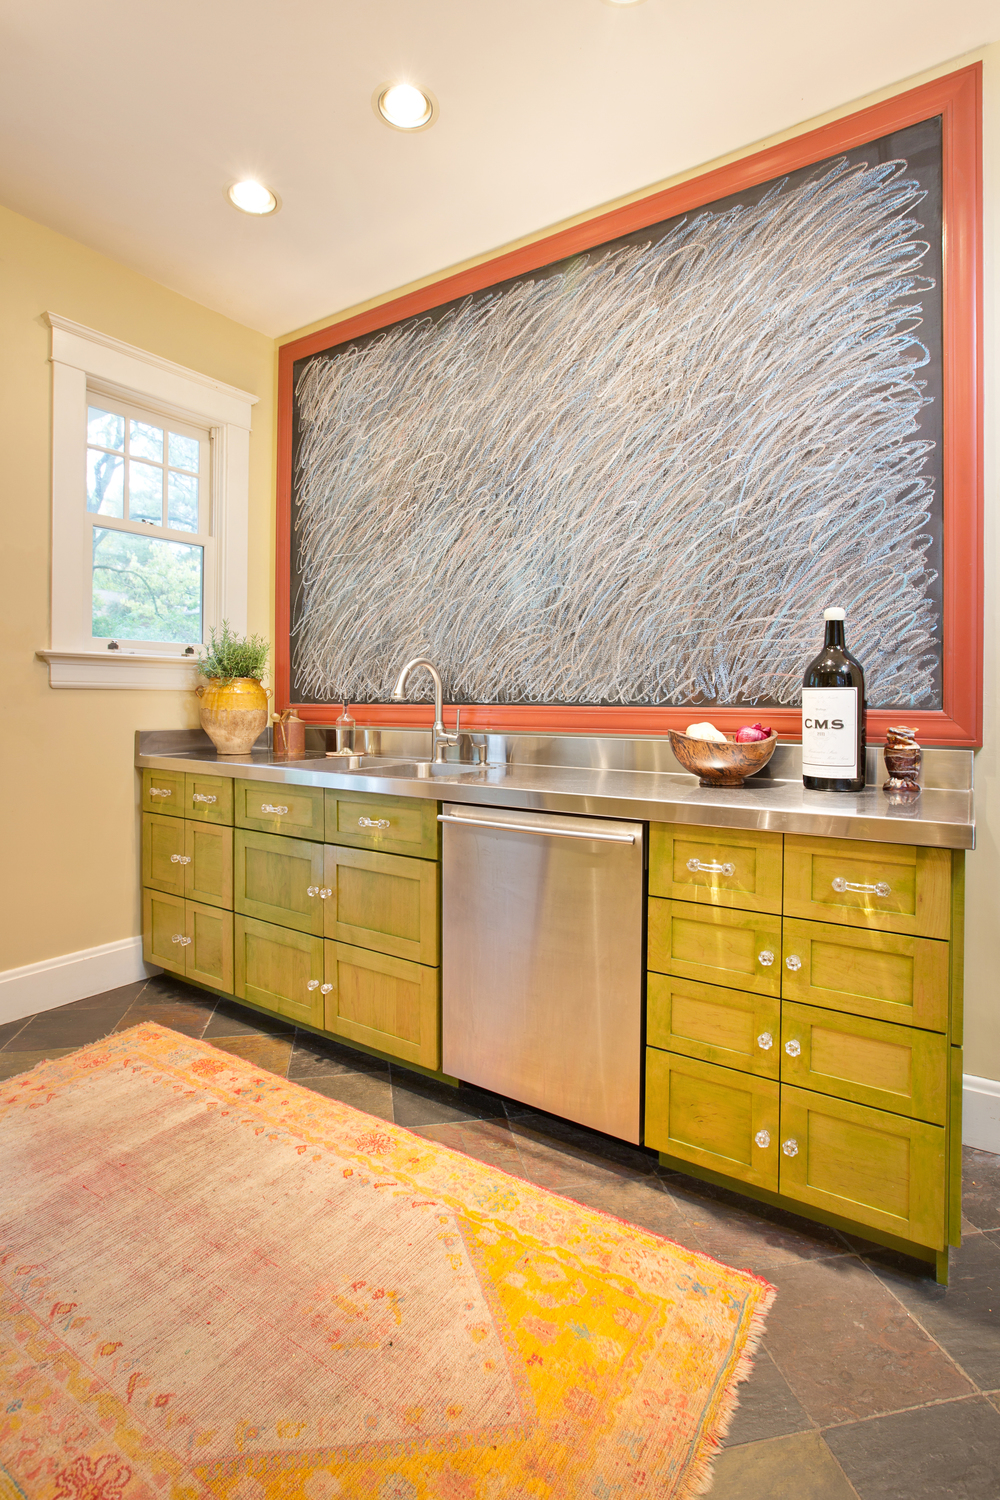 This could have been an unremarkable galley kitchen. Not only did we make it uber-functional (little is the new big) but we added spice by staining the cabinets in a chartreuse wash and installing12x5 chalkboard (yes, that's a chalkboard) which this homeowner uses to channel her inner Cy Twombley